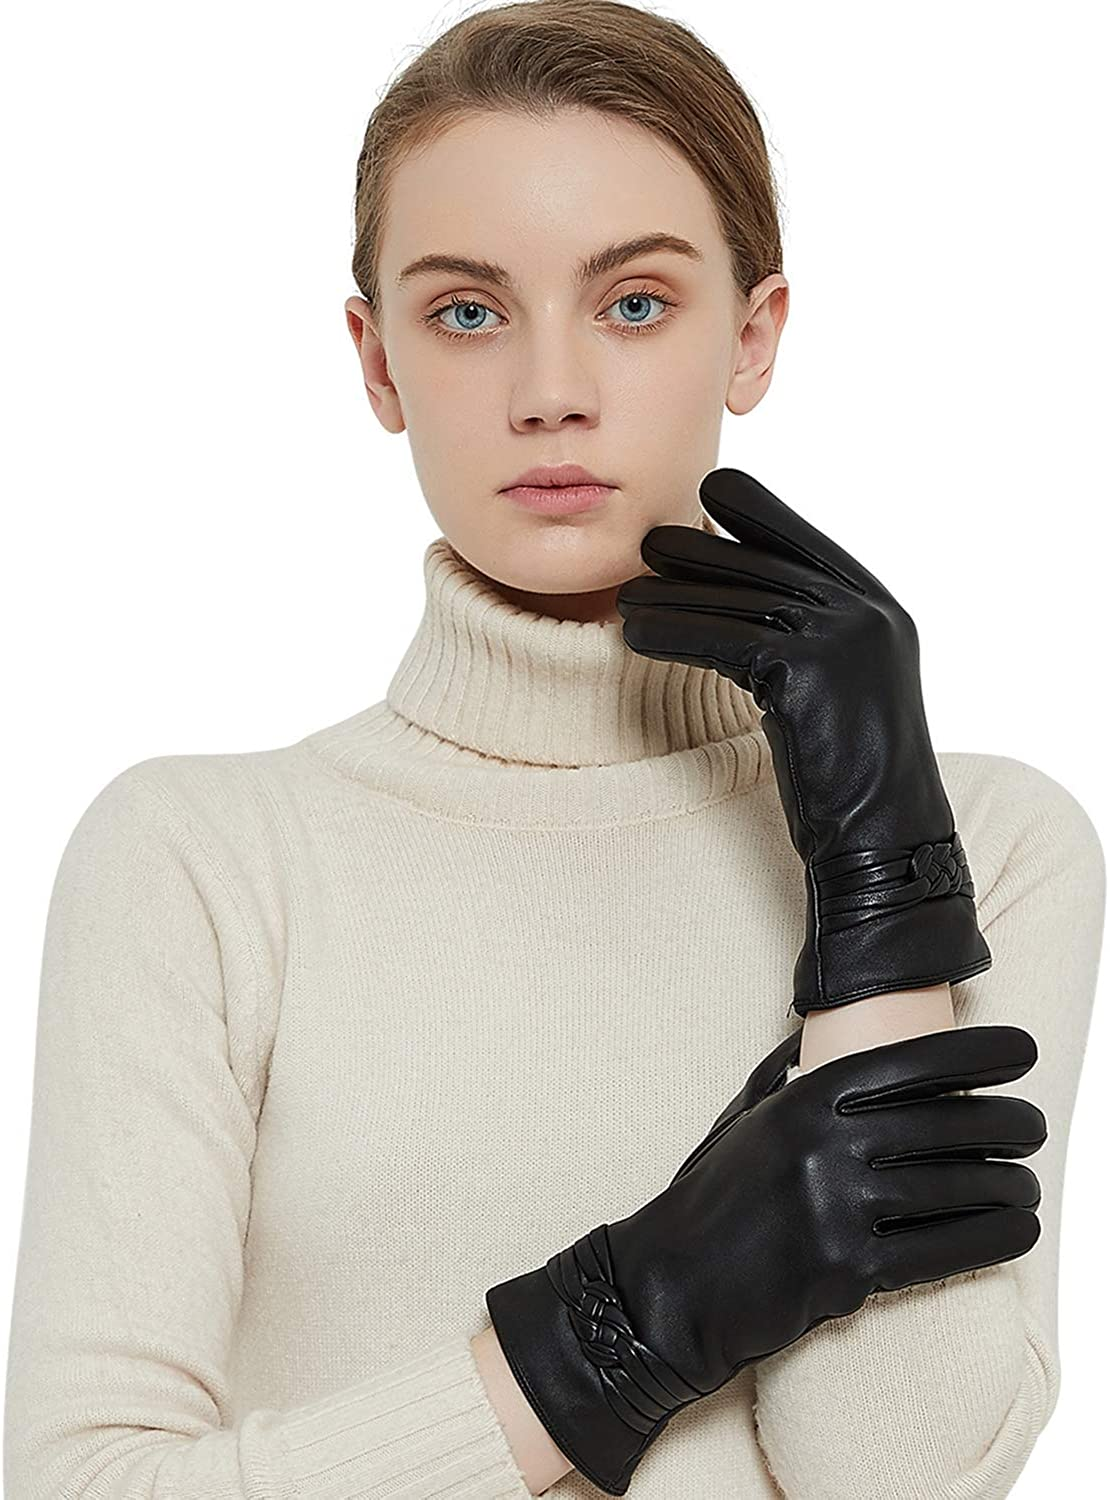 Genuine Sheepskin Leather Gloves For Women, Winter Warm Cashmere Lining Touchscreen Texting Driving Motorcycle Dress Gloves at  Women's Clothing store